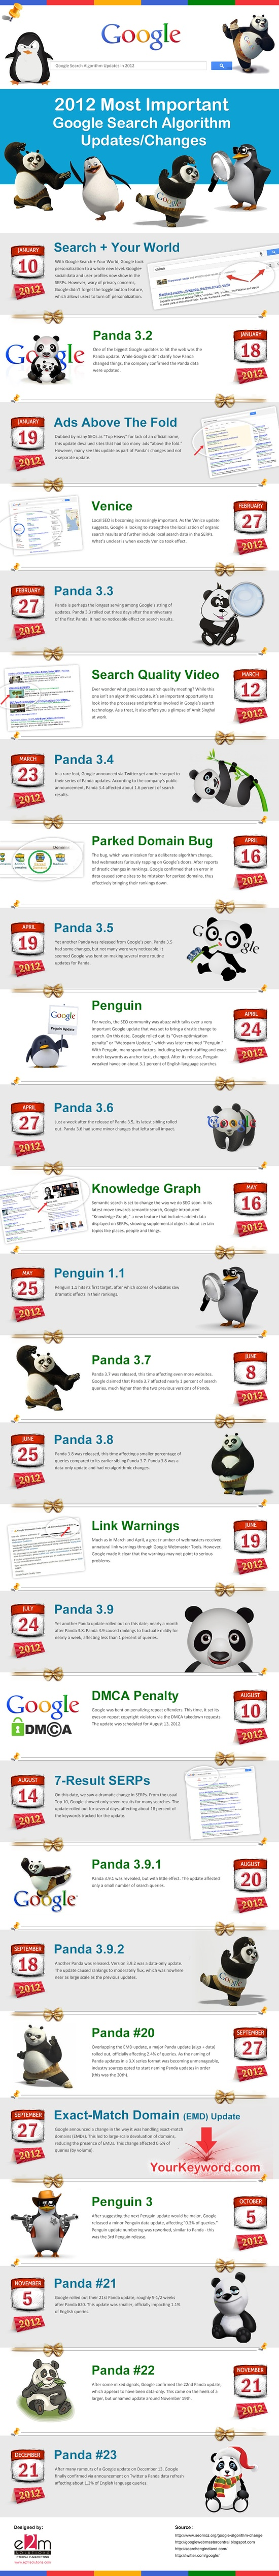 Cambios del algoritmo de Google en 2012 #infografia #infographic #seo  We love SEO and infographics. Come visit us in Vienna, Austria or at httpwww.ostheimer.at